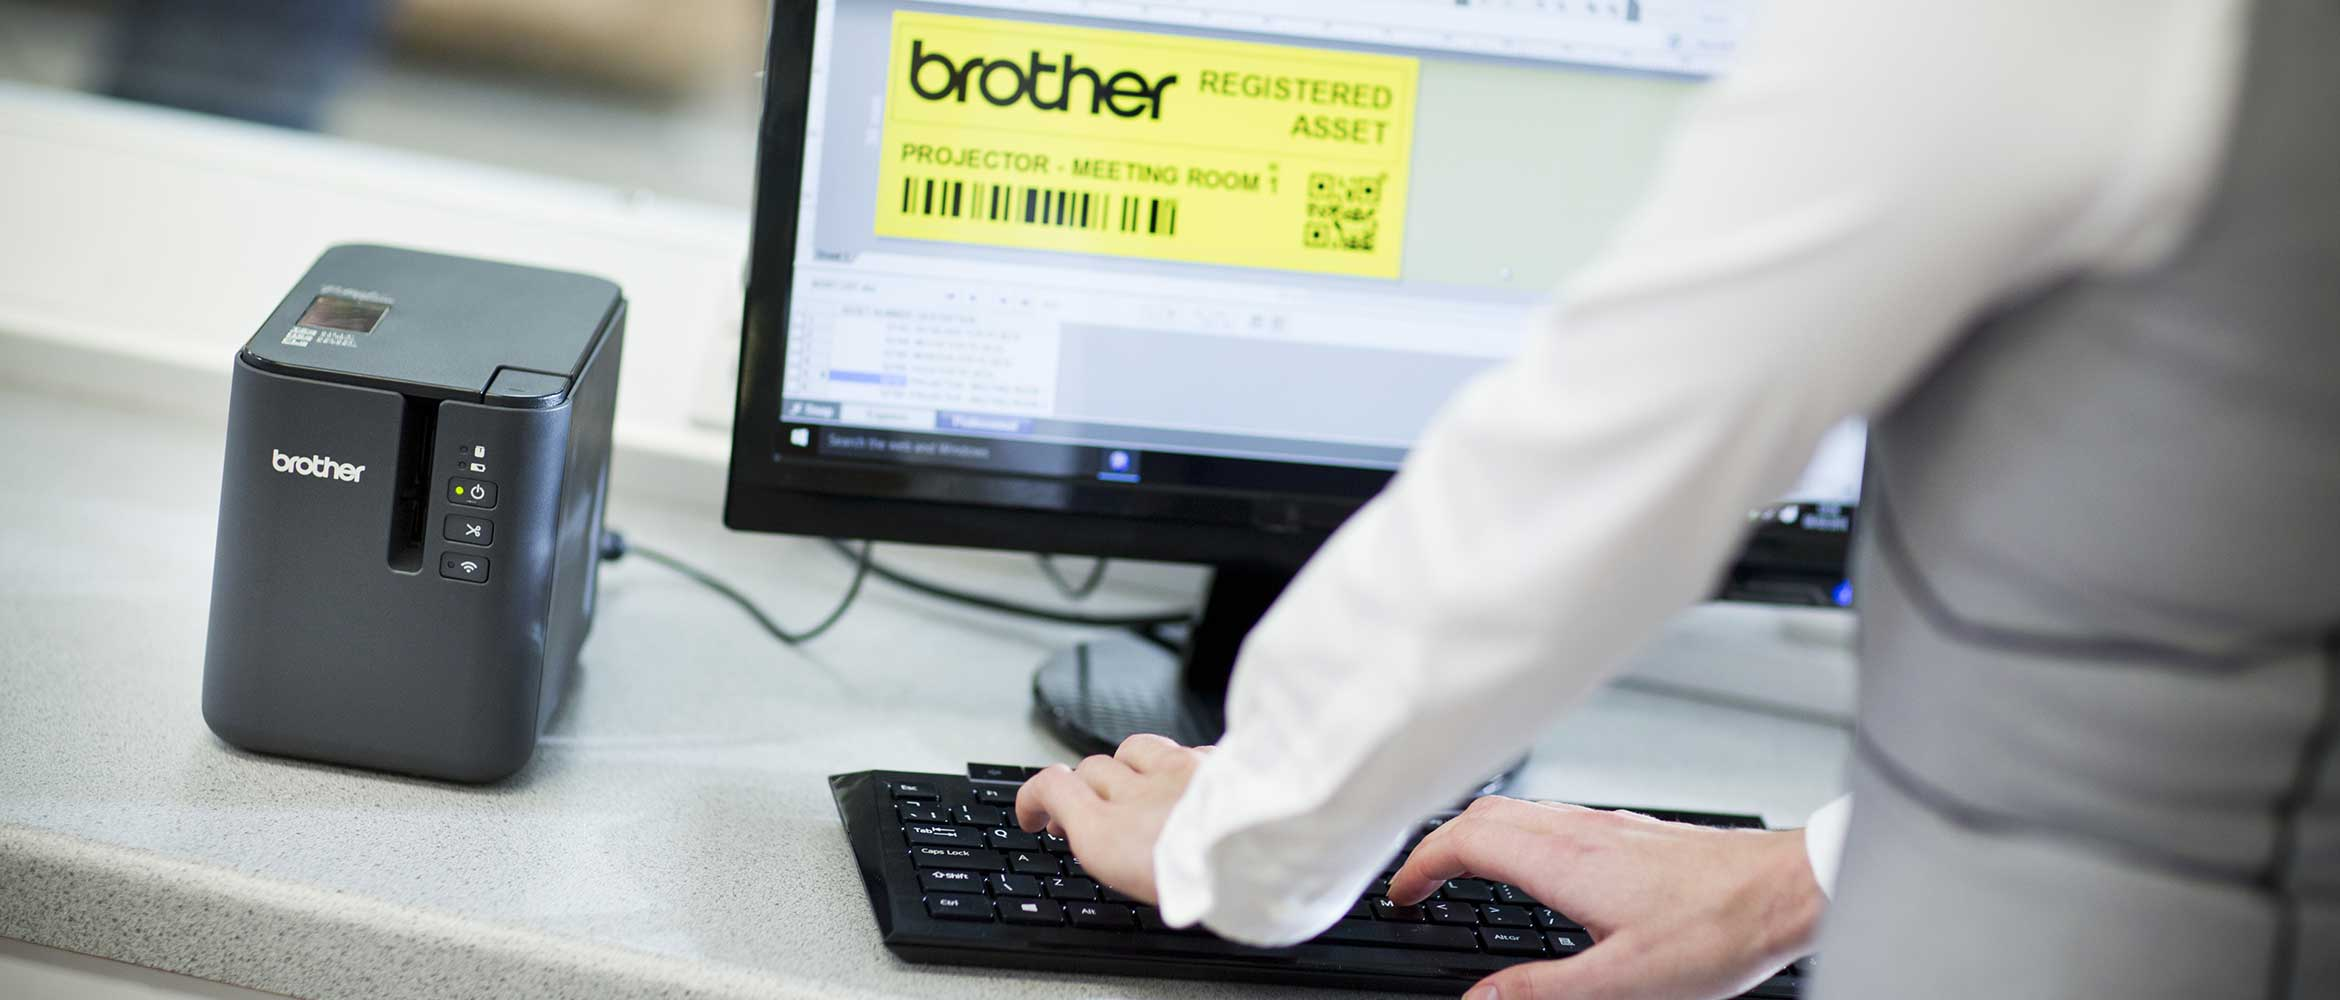 Brother PT-P900 series label printer on a desk